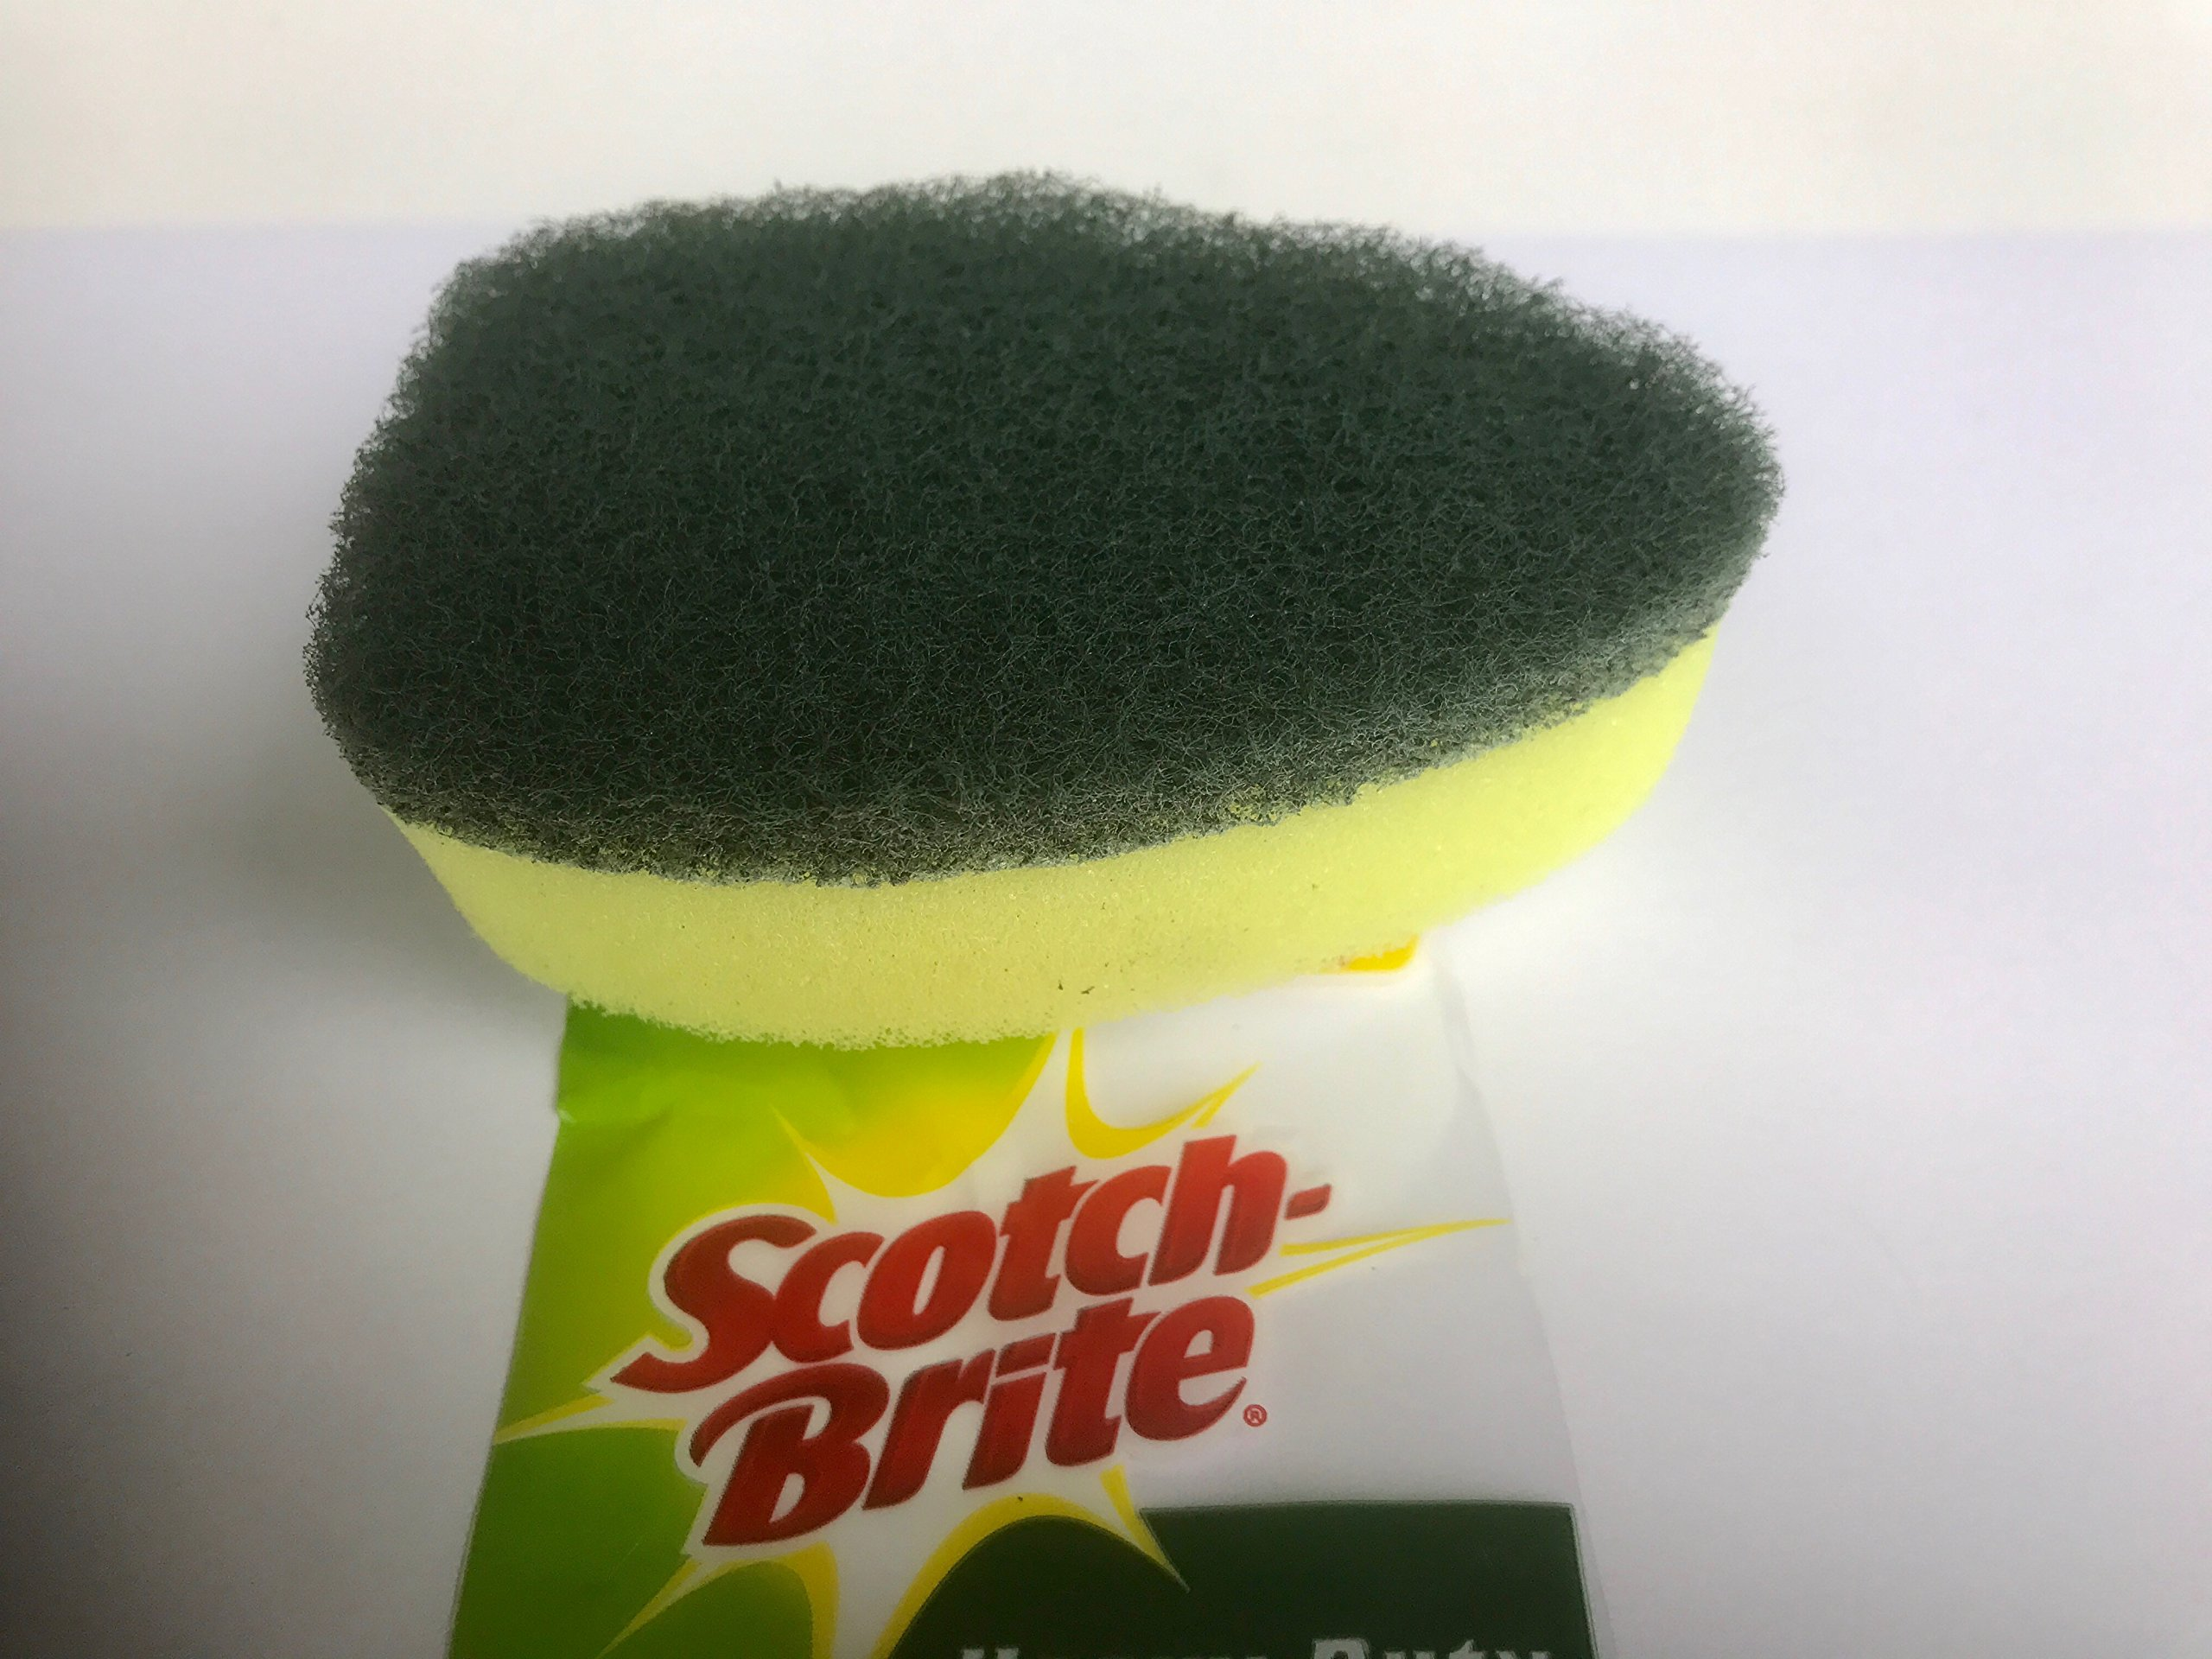 Ocelo Scotch-Brite Wand Bundle - sponge head scrub side